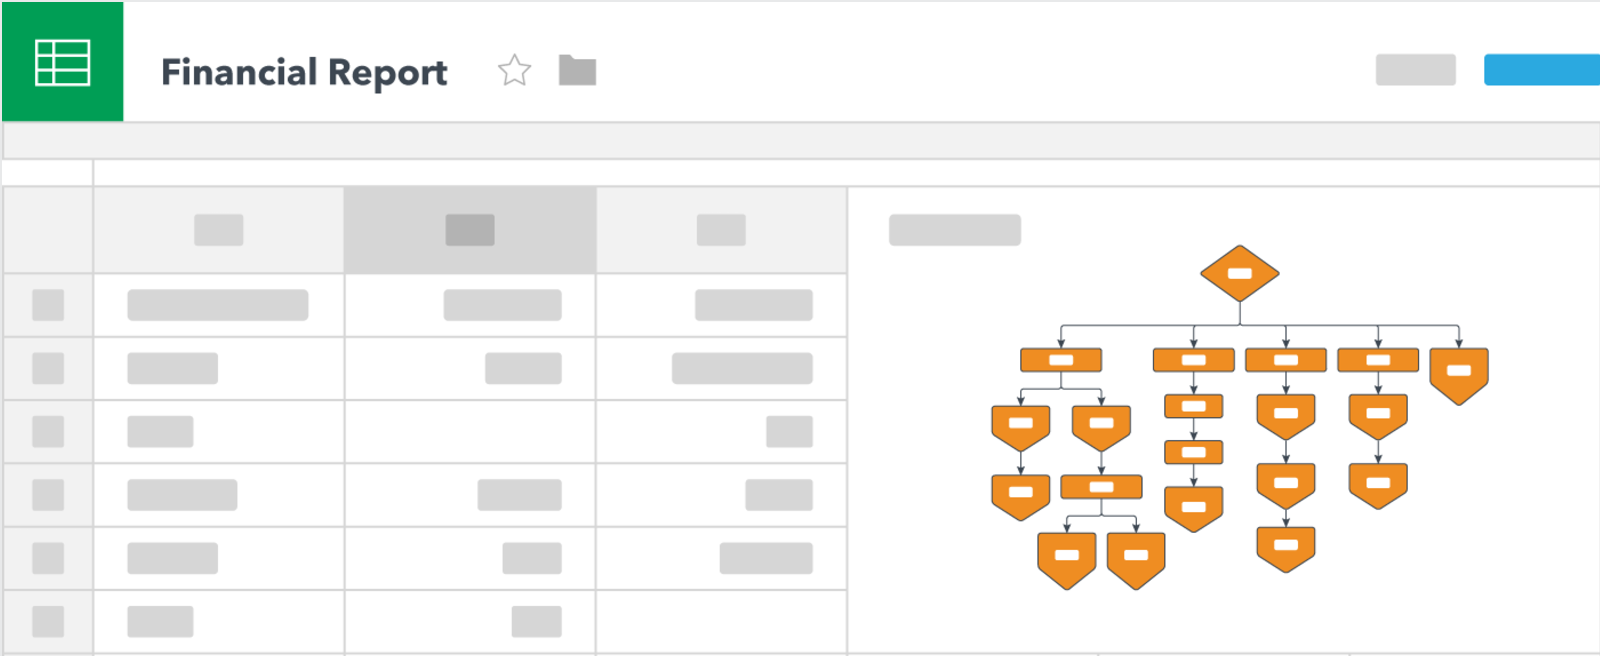 How to Integrate Lucidchart with Google Drive | Lucidchart Blog